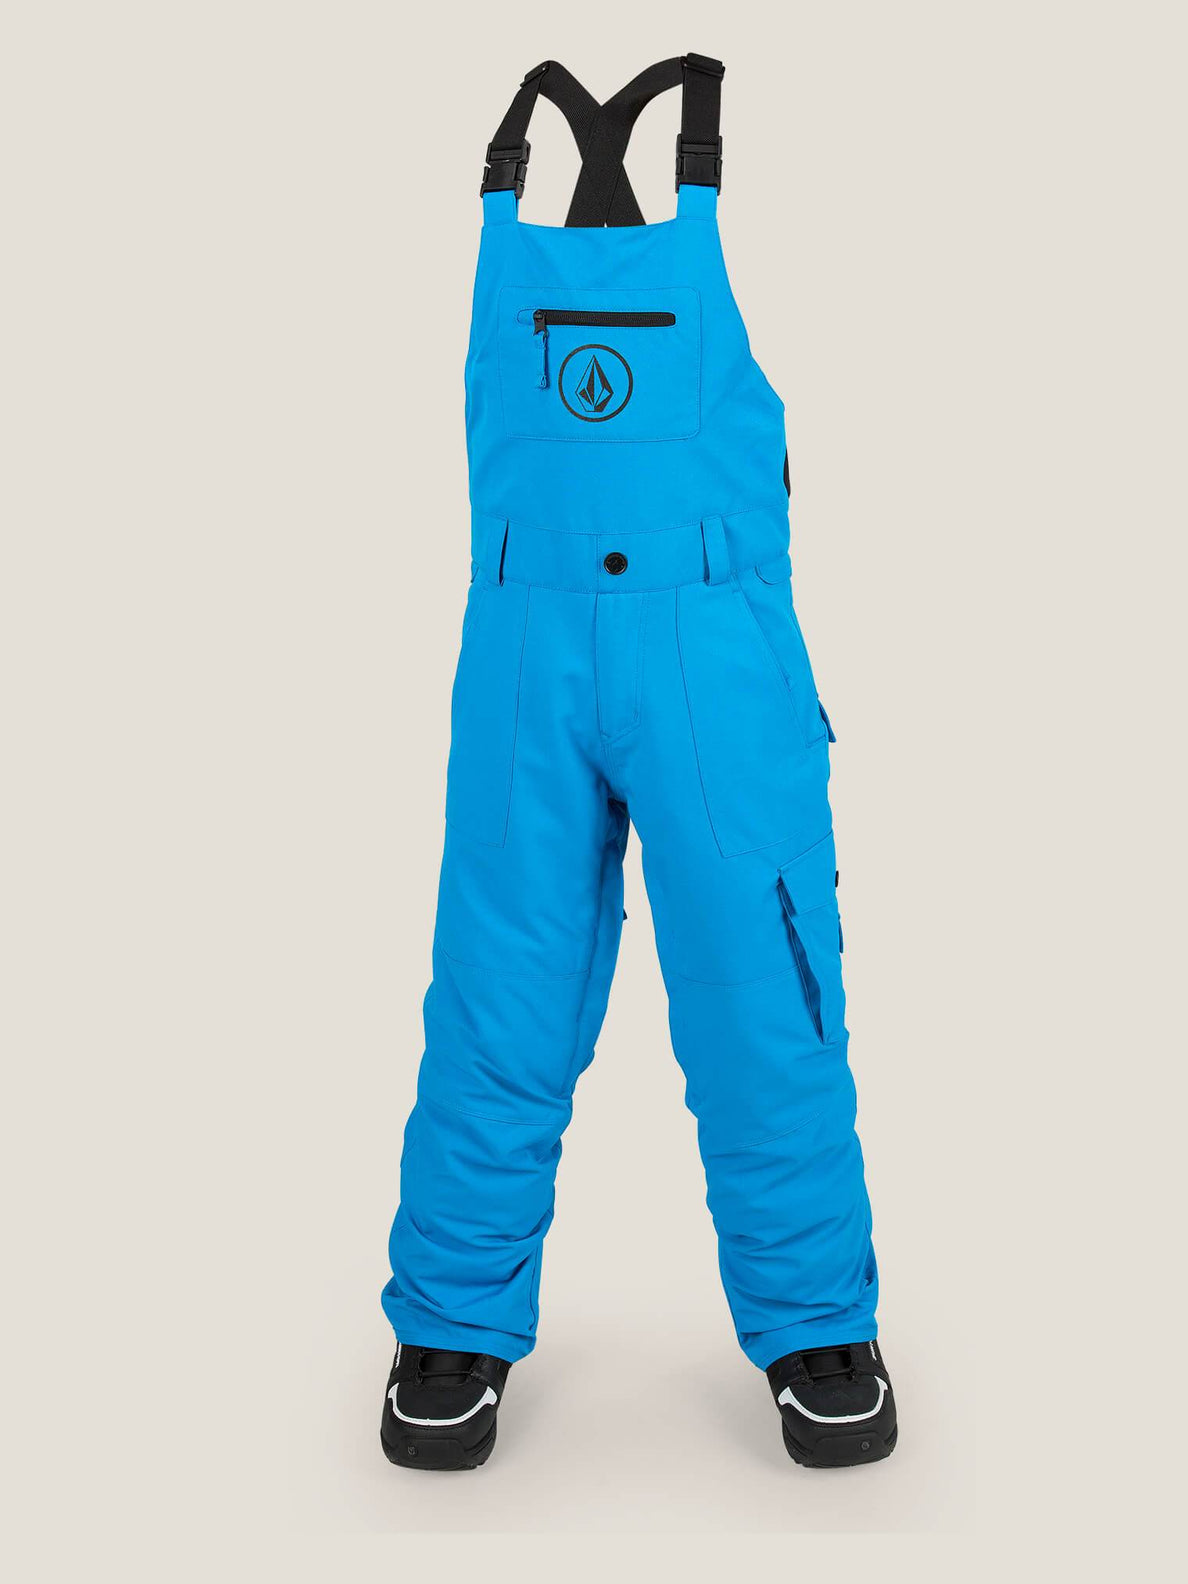 Sutton Insulated Overall In Blue, Front View